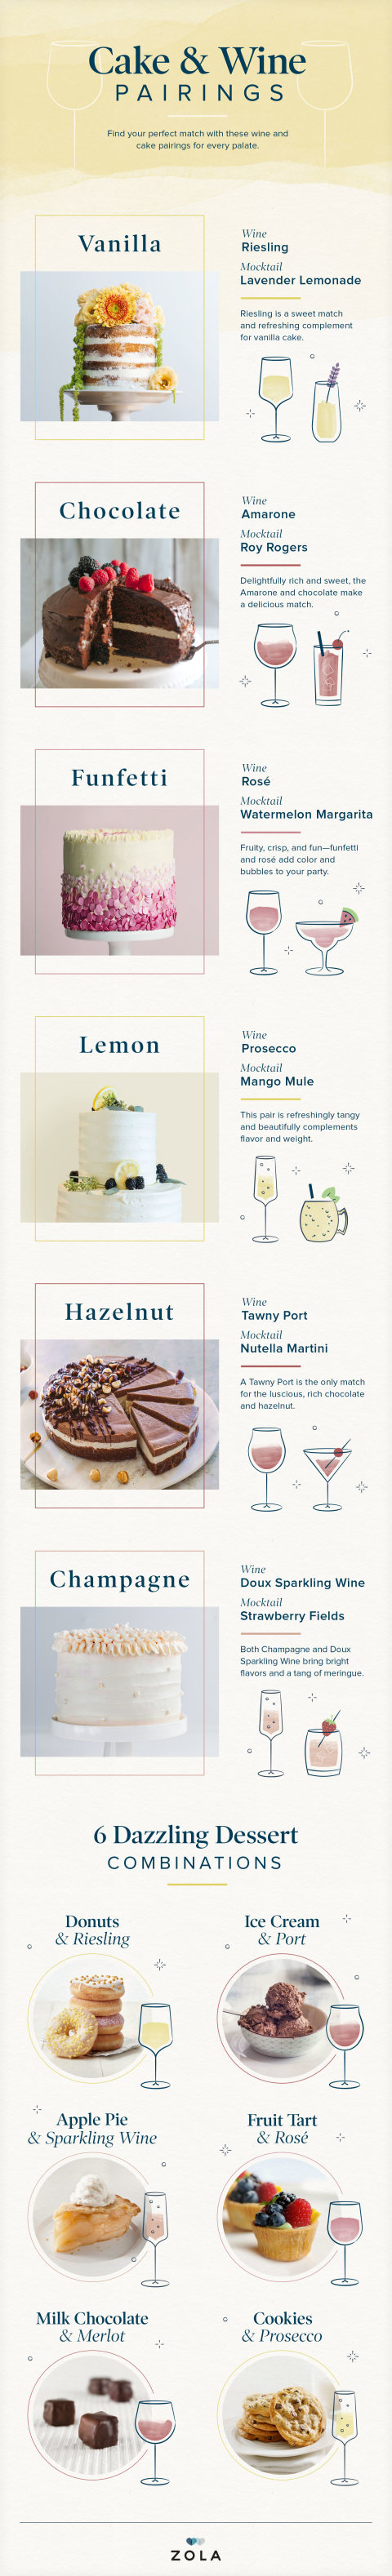 Cake and Wine Pairing Guide